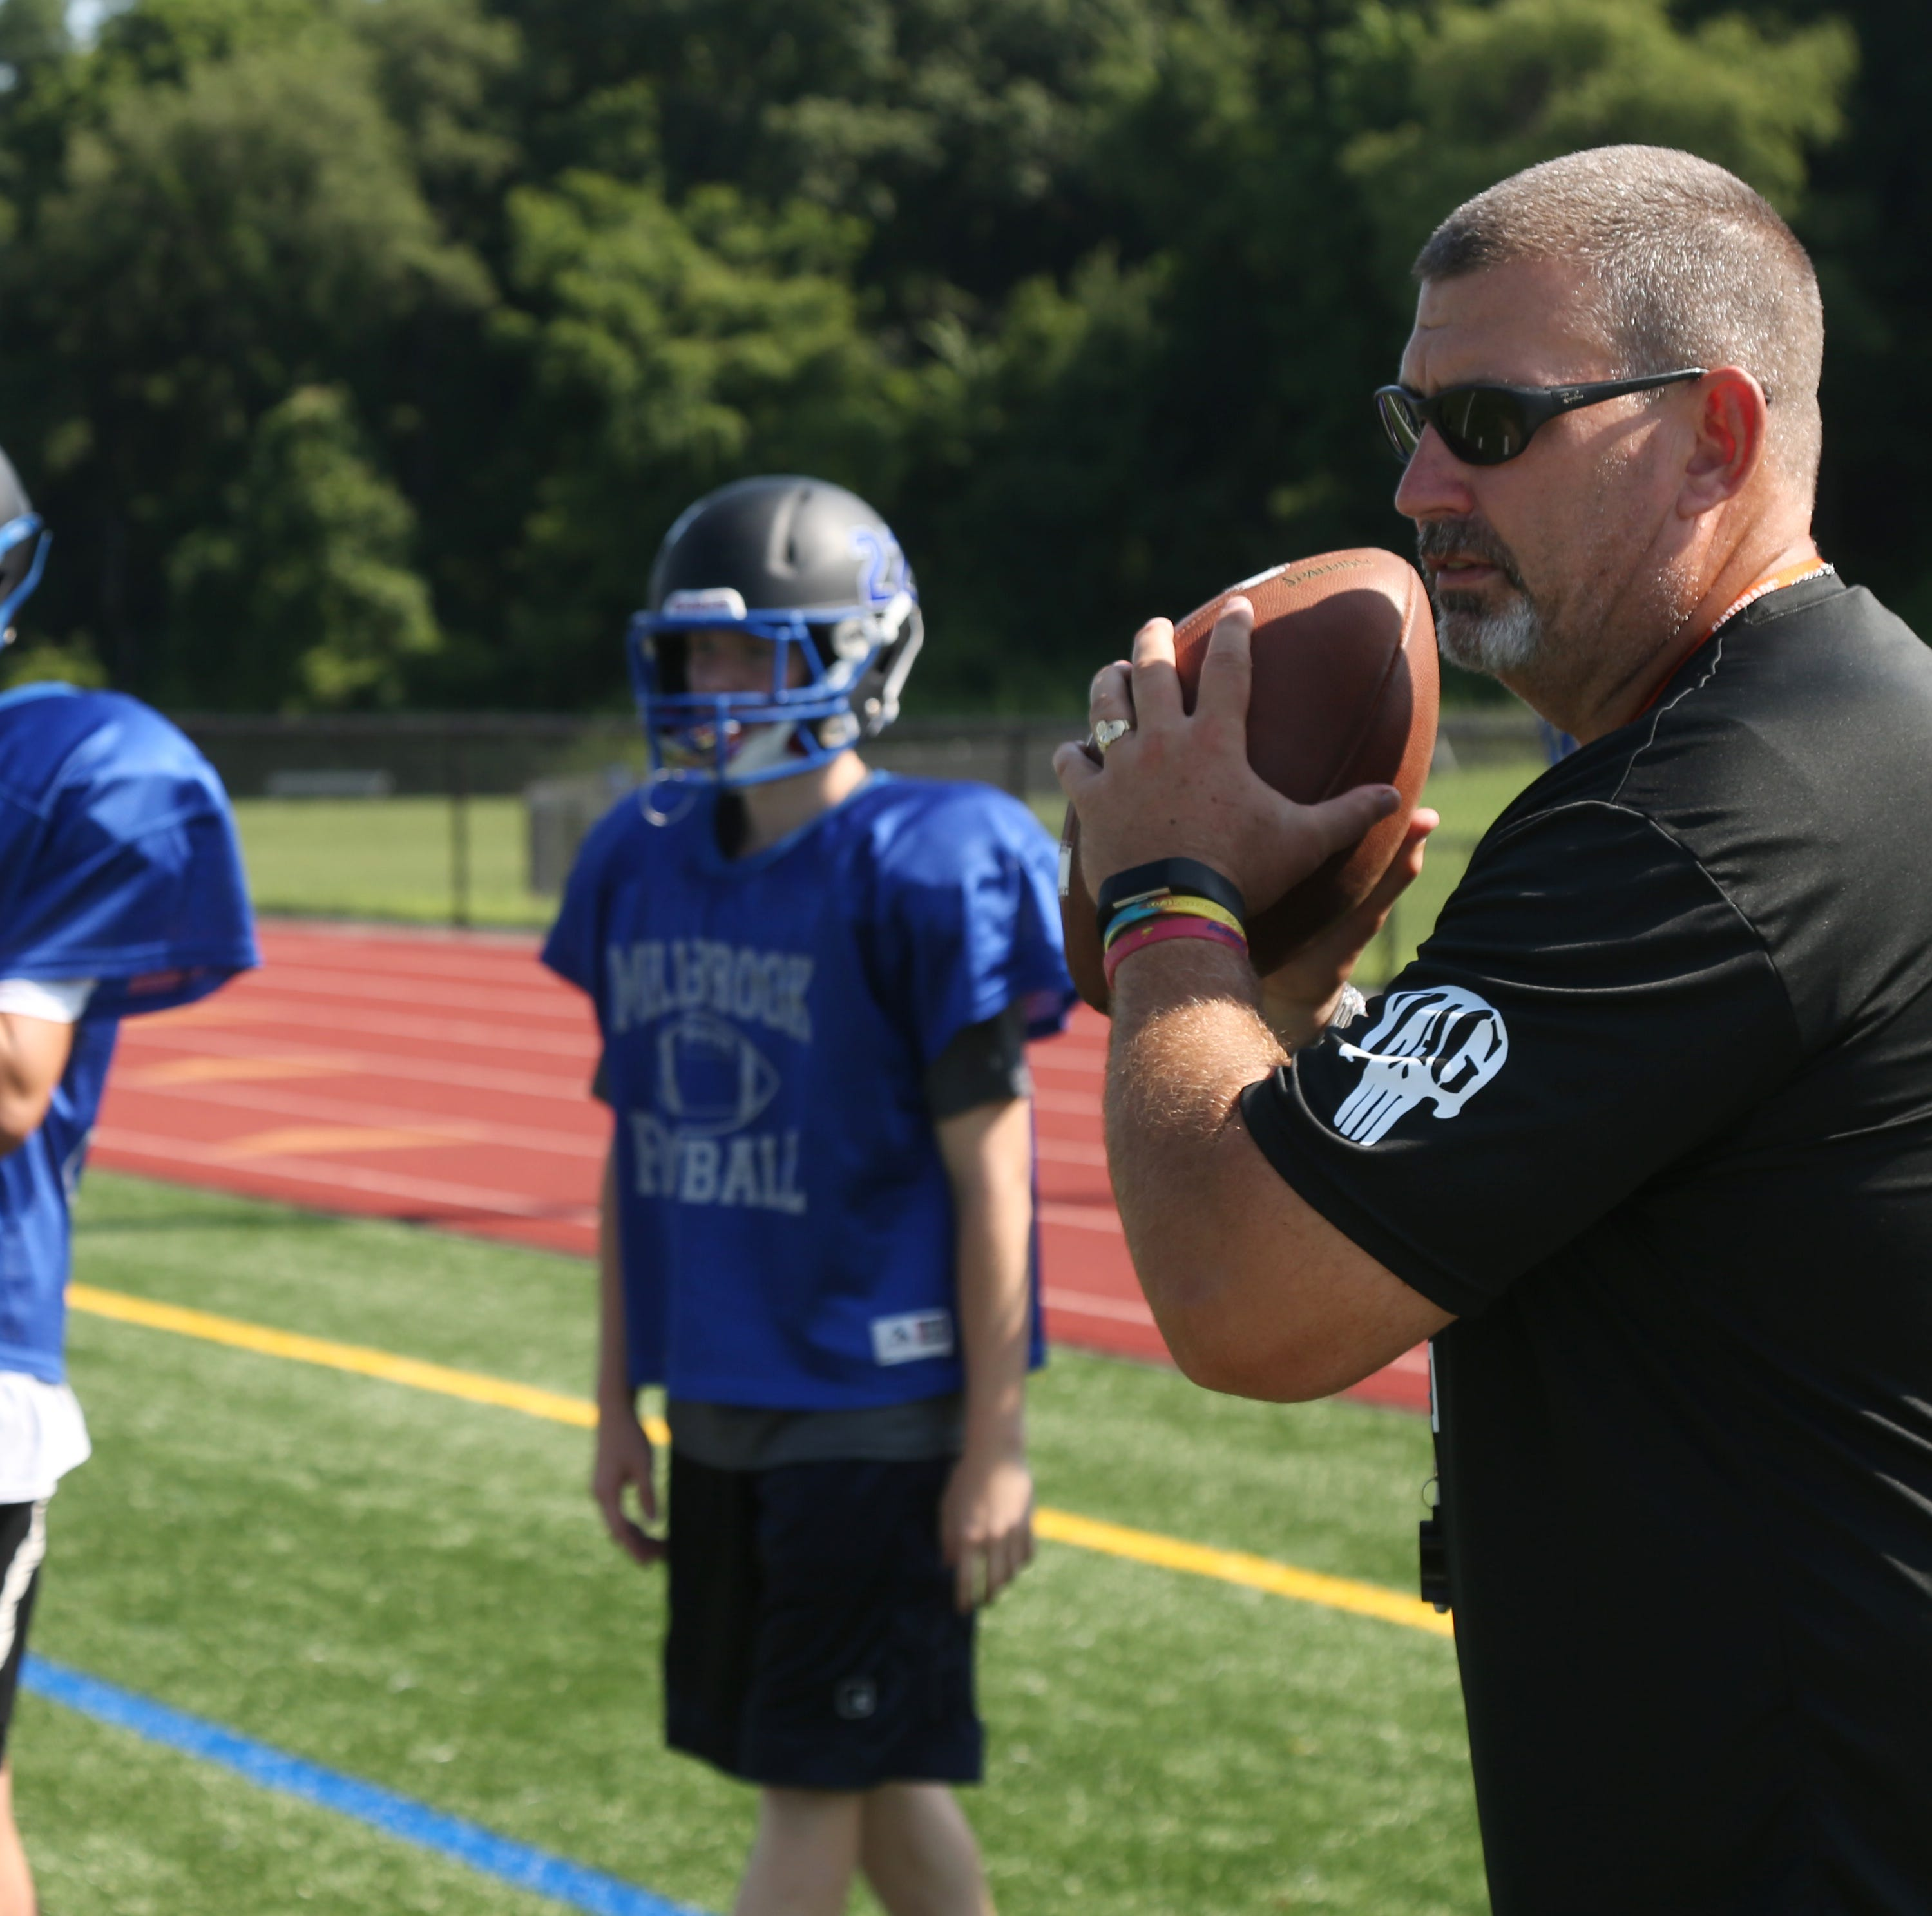 'It was time for a change': Keenan steps down as Millbrook football coach